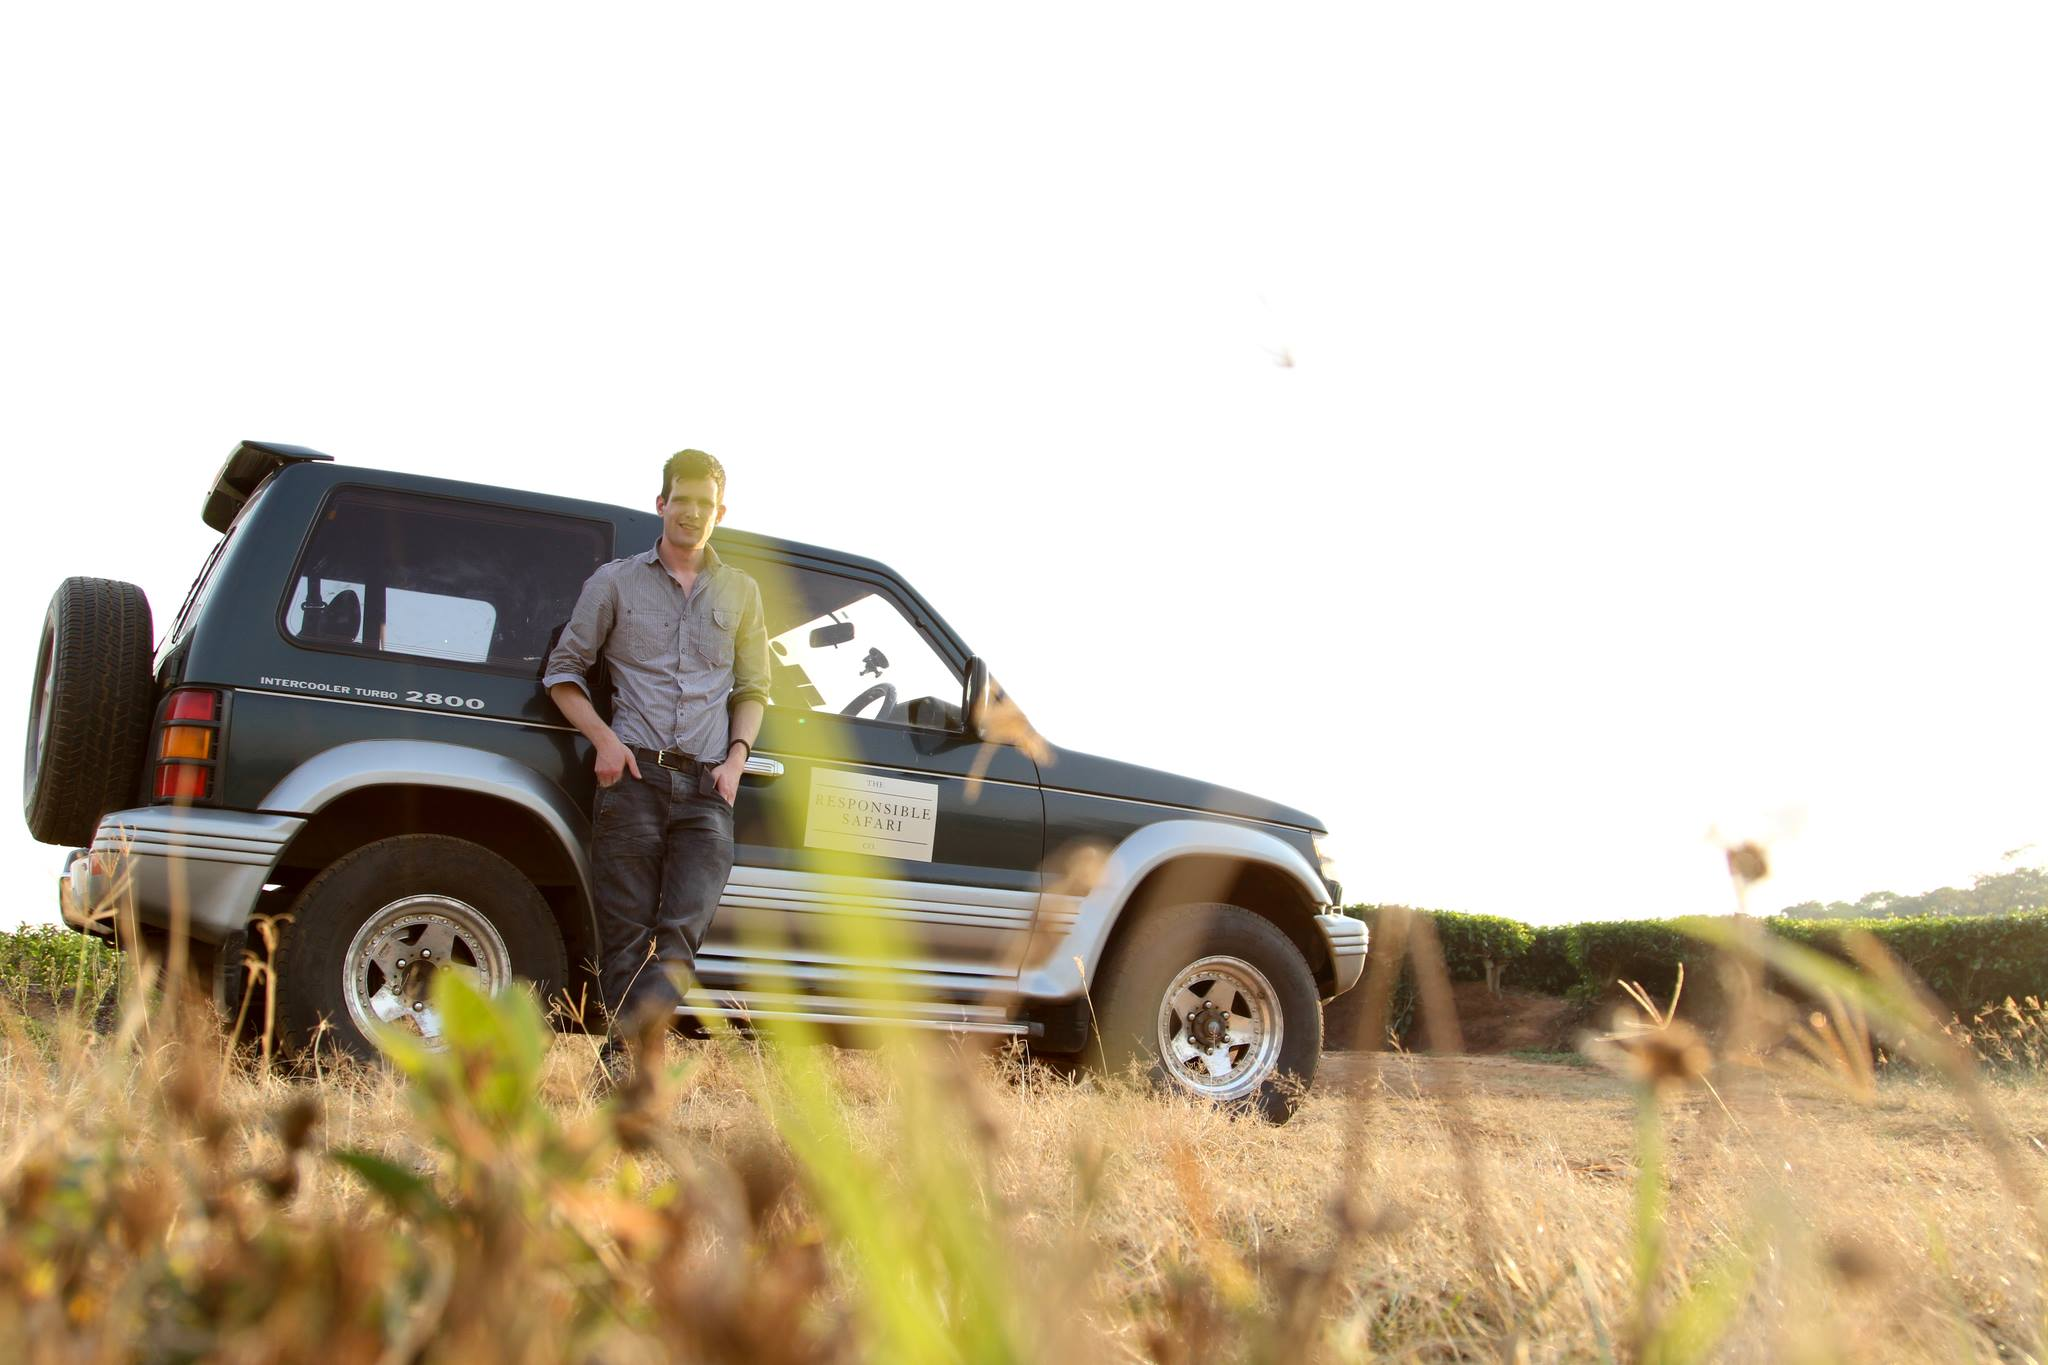 Jonny leaning against his rented 4x4 whilst driving abroad in Malawi